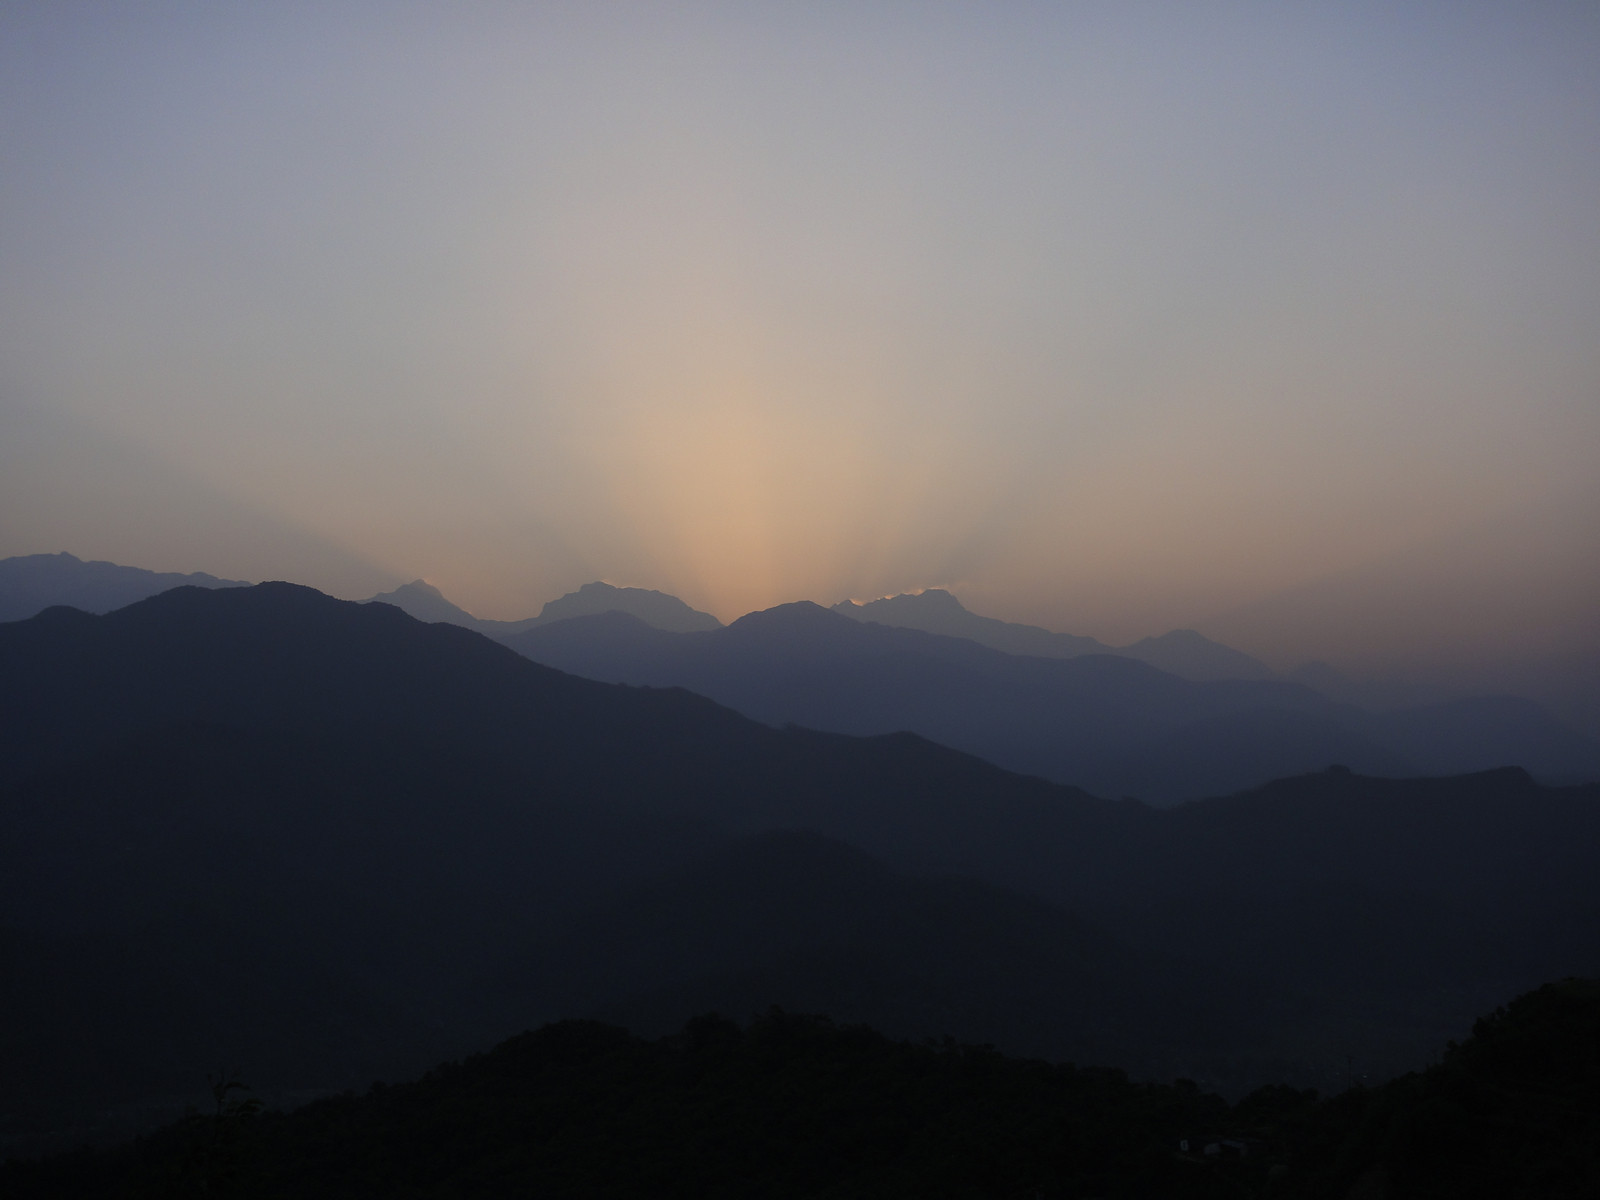 Sunrise view of the Annapurna range (Nepal)